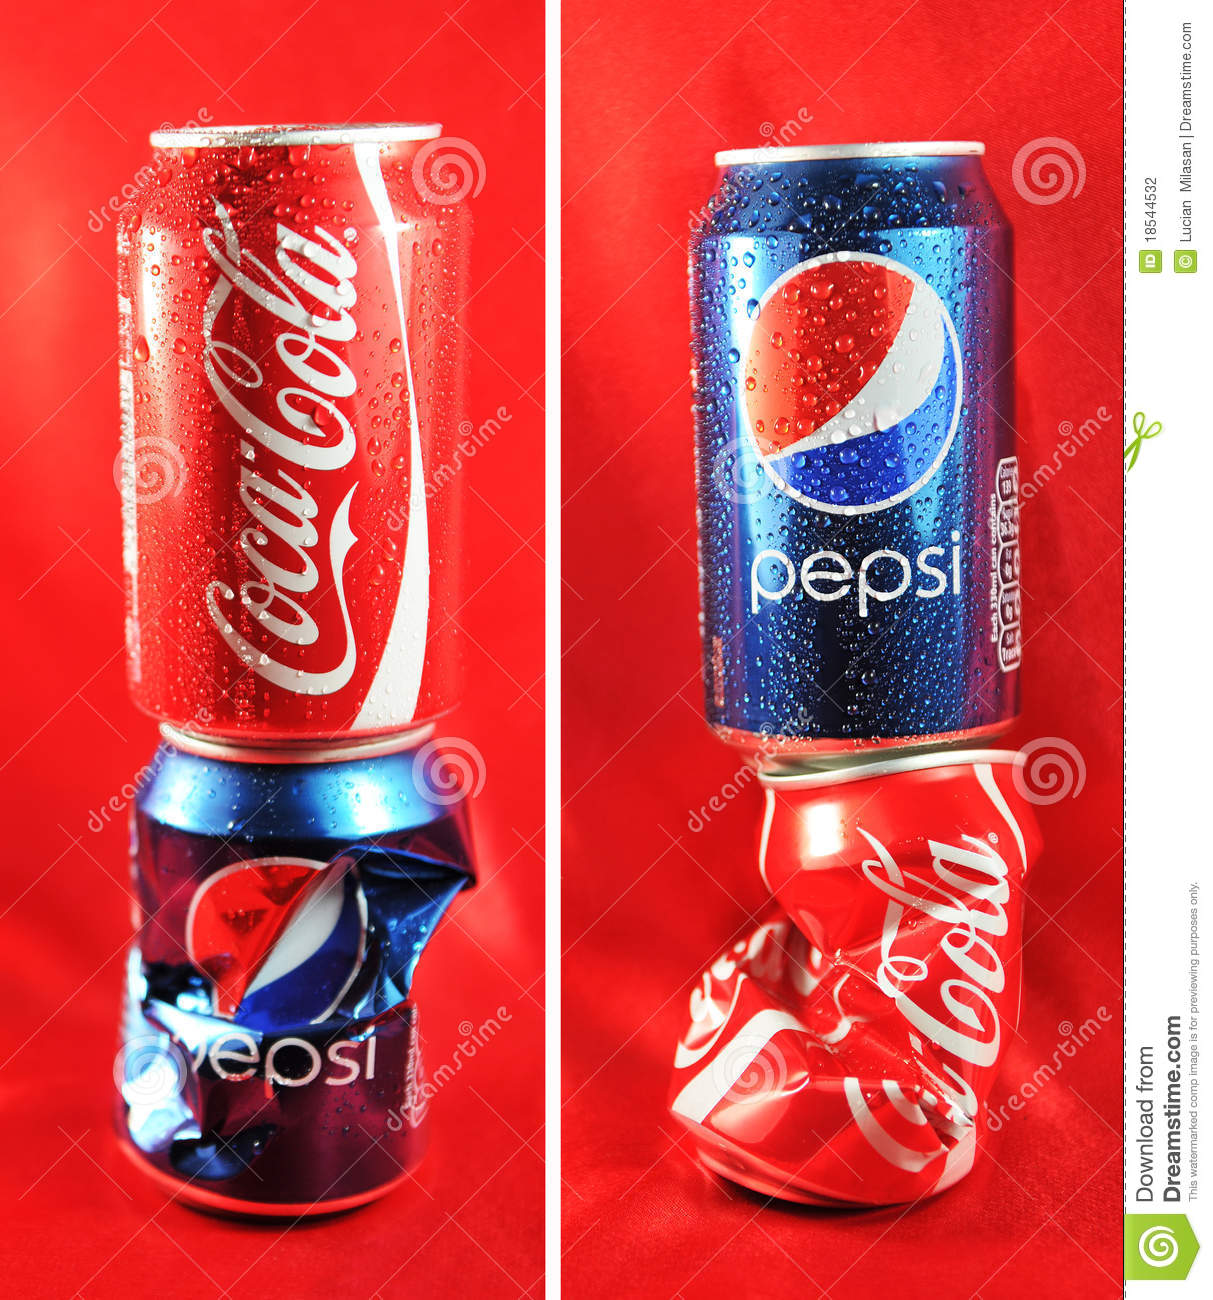 coca cola vs escola Lineage of: escola v coca cola bottling company of fresno--the exploding coke bottle case current annotated case 08/21/2011 at 18:26 by jztortsclass.